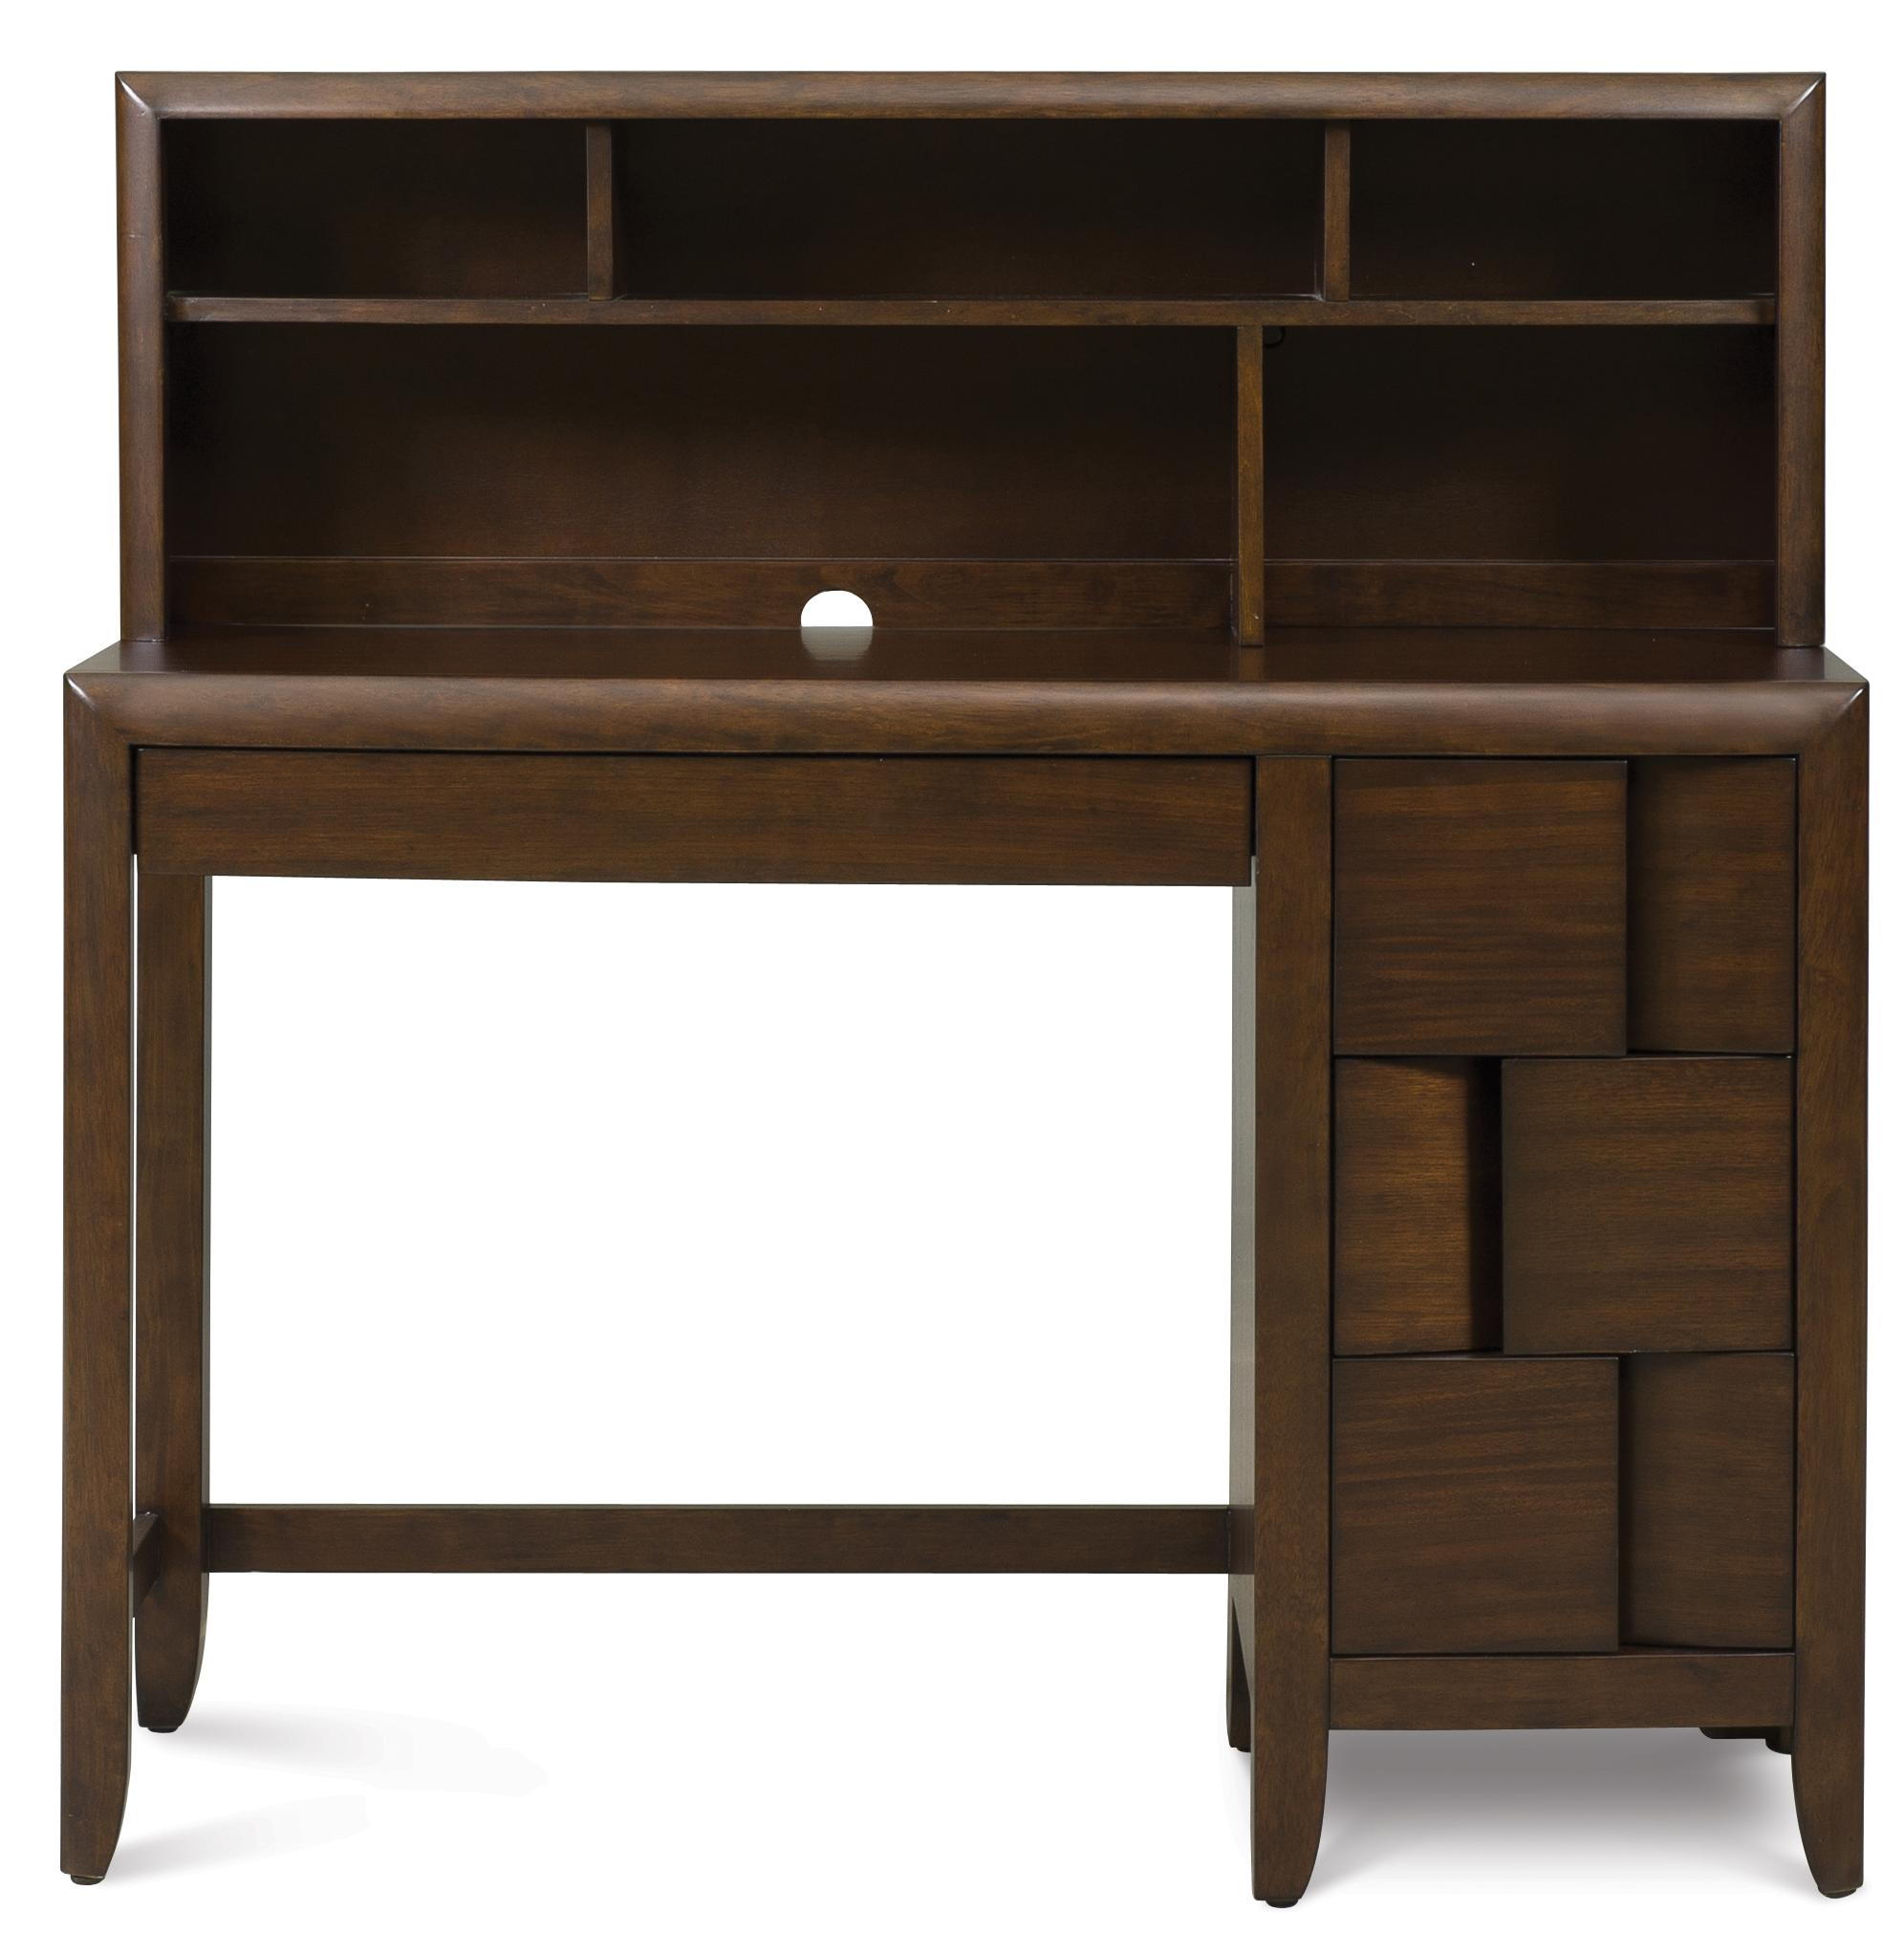 Belfort Select Youth Twilight  Desk and Hutch - Item Number: Y1876-30/31